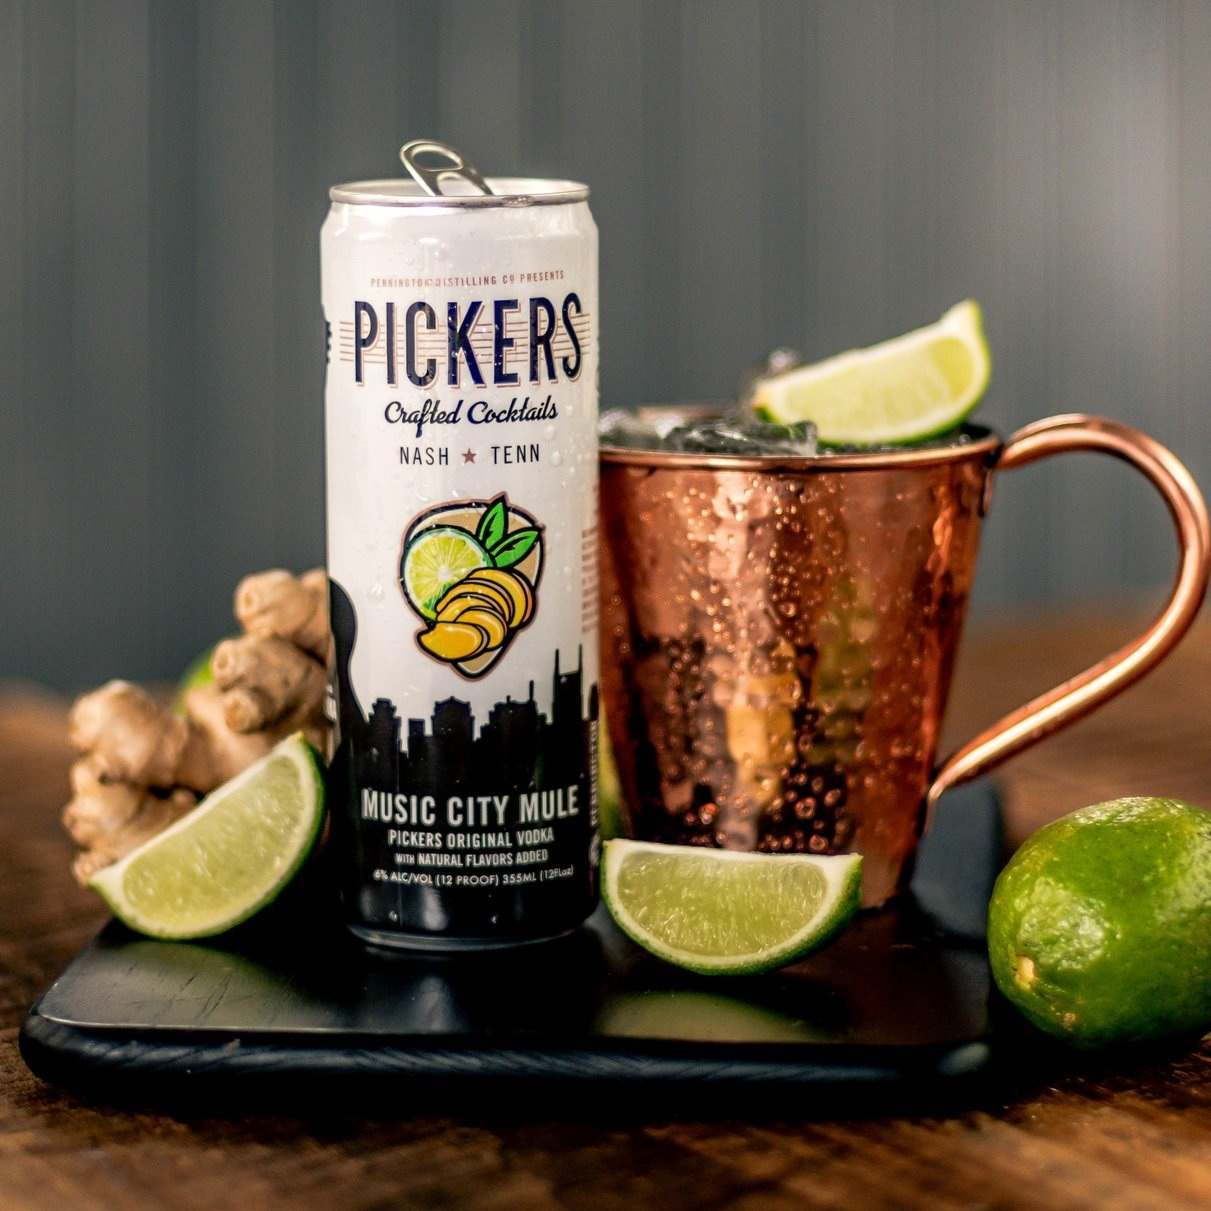 Pickers+Crafted+Cocktails